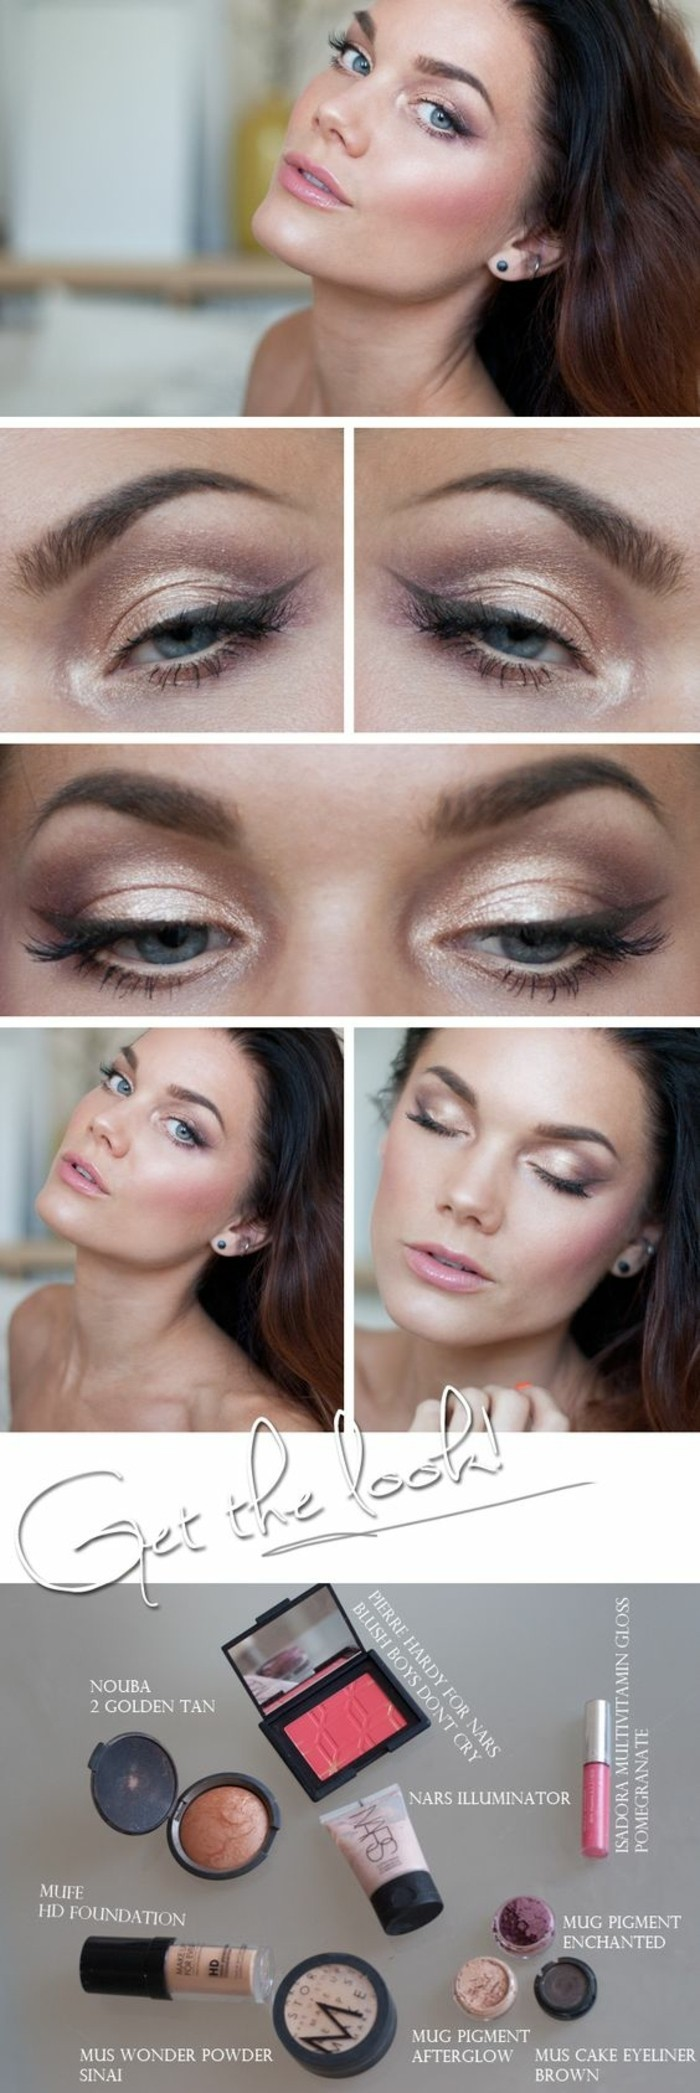 Maquillage naturel 2016 idees design de maison Idee maquillage yeux